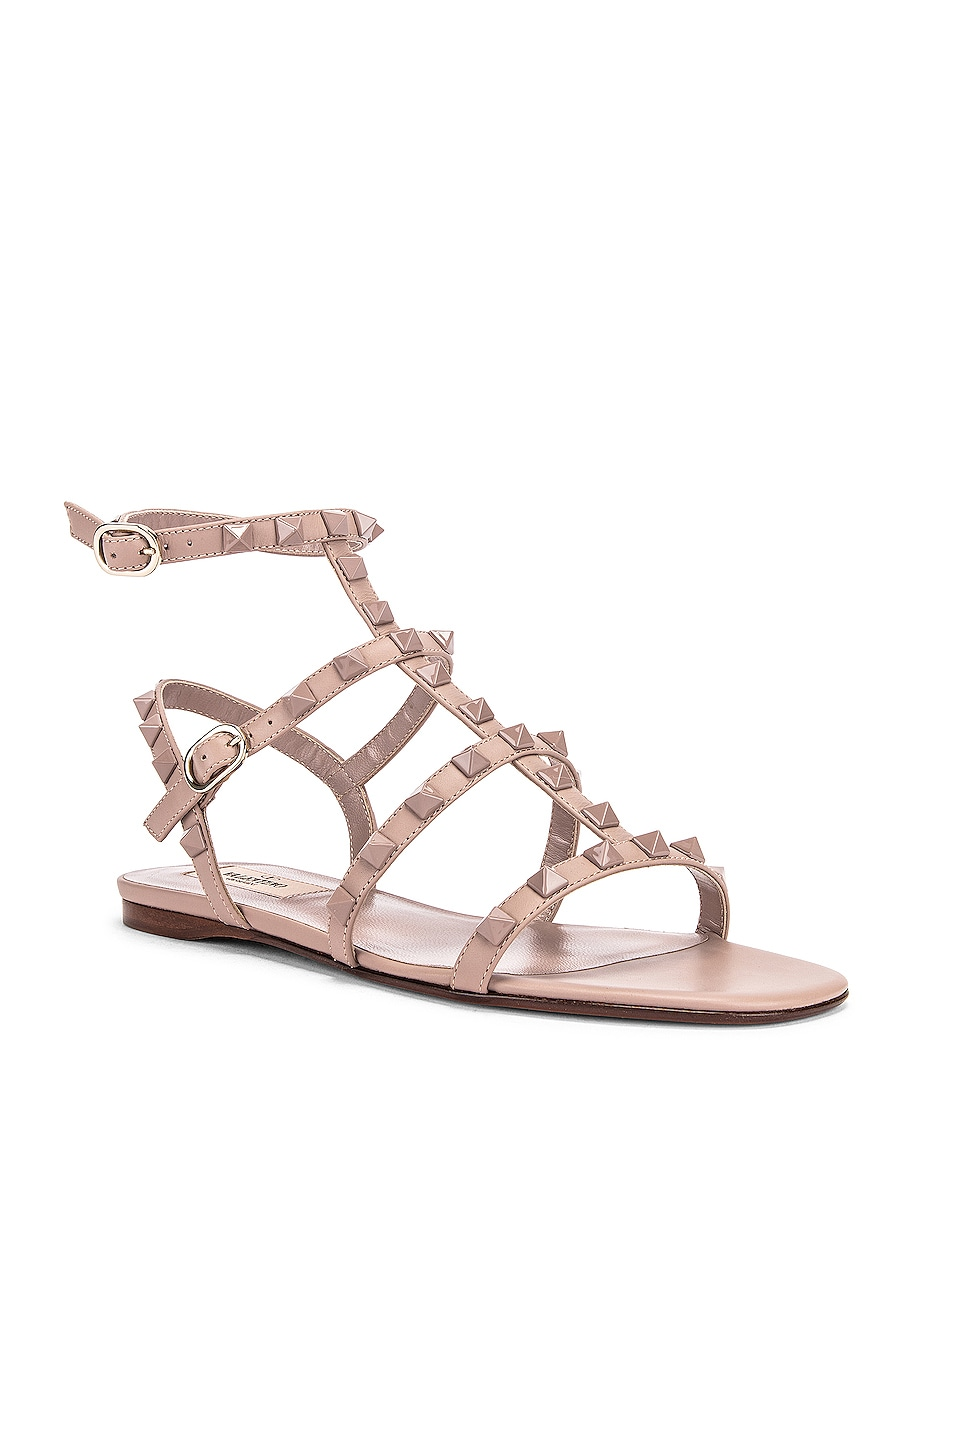 Image 2 of Valentino Rockstud Sandals in Poudre